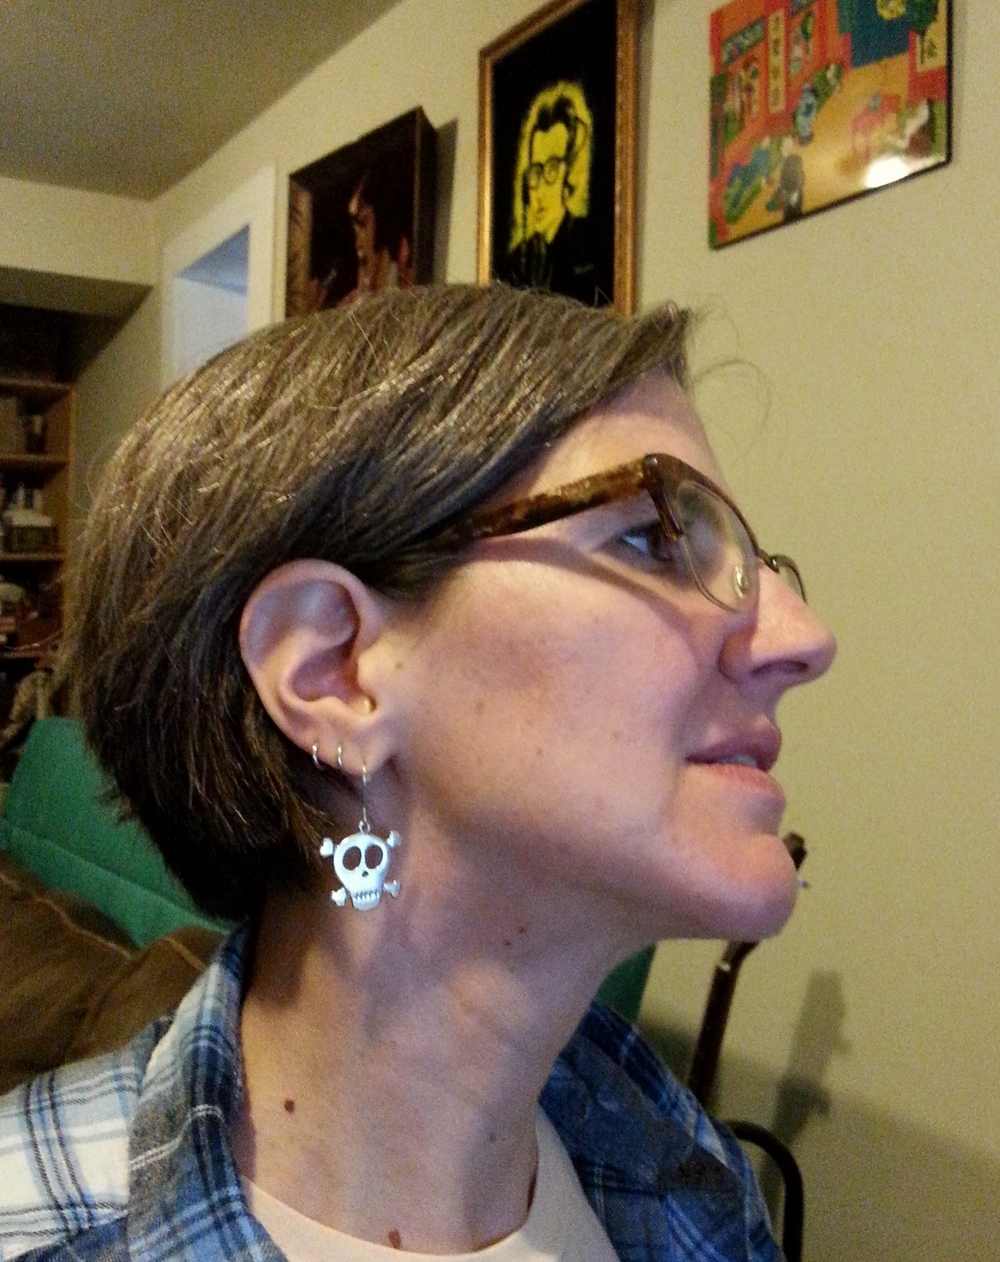 Wearing my Skull and Crossbones Earrings